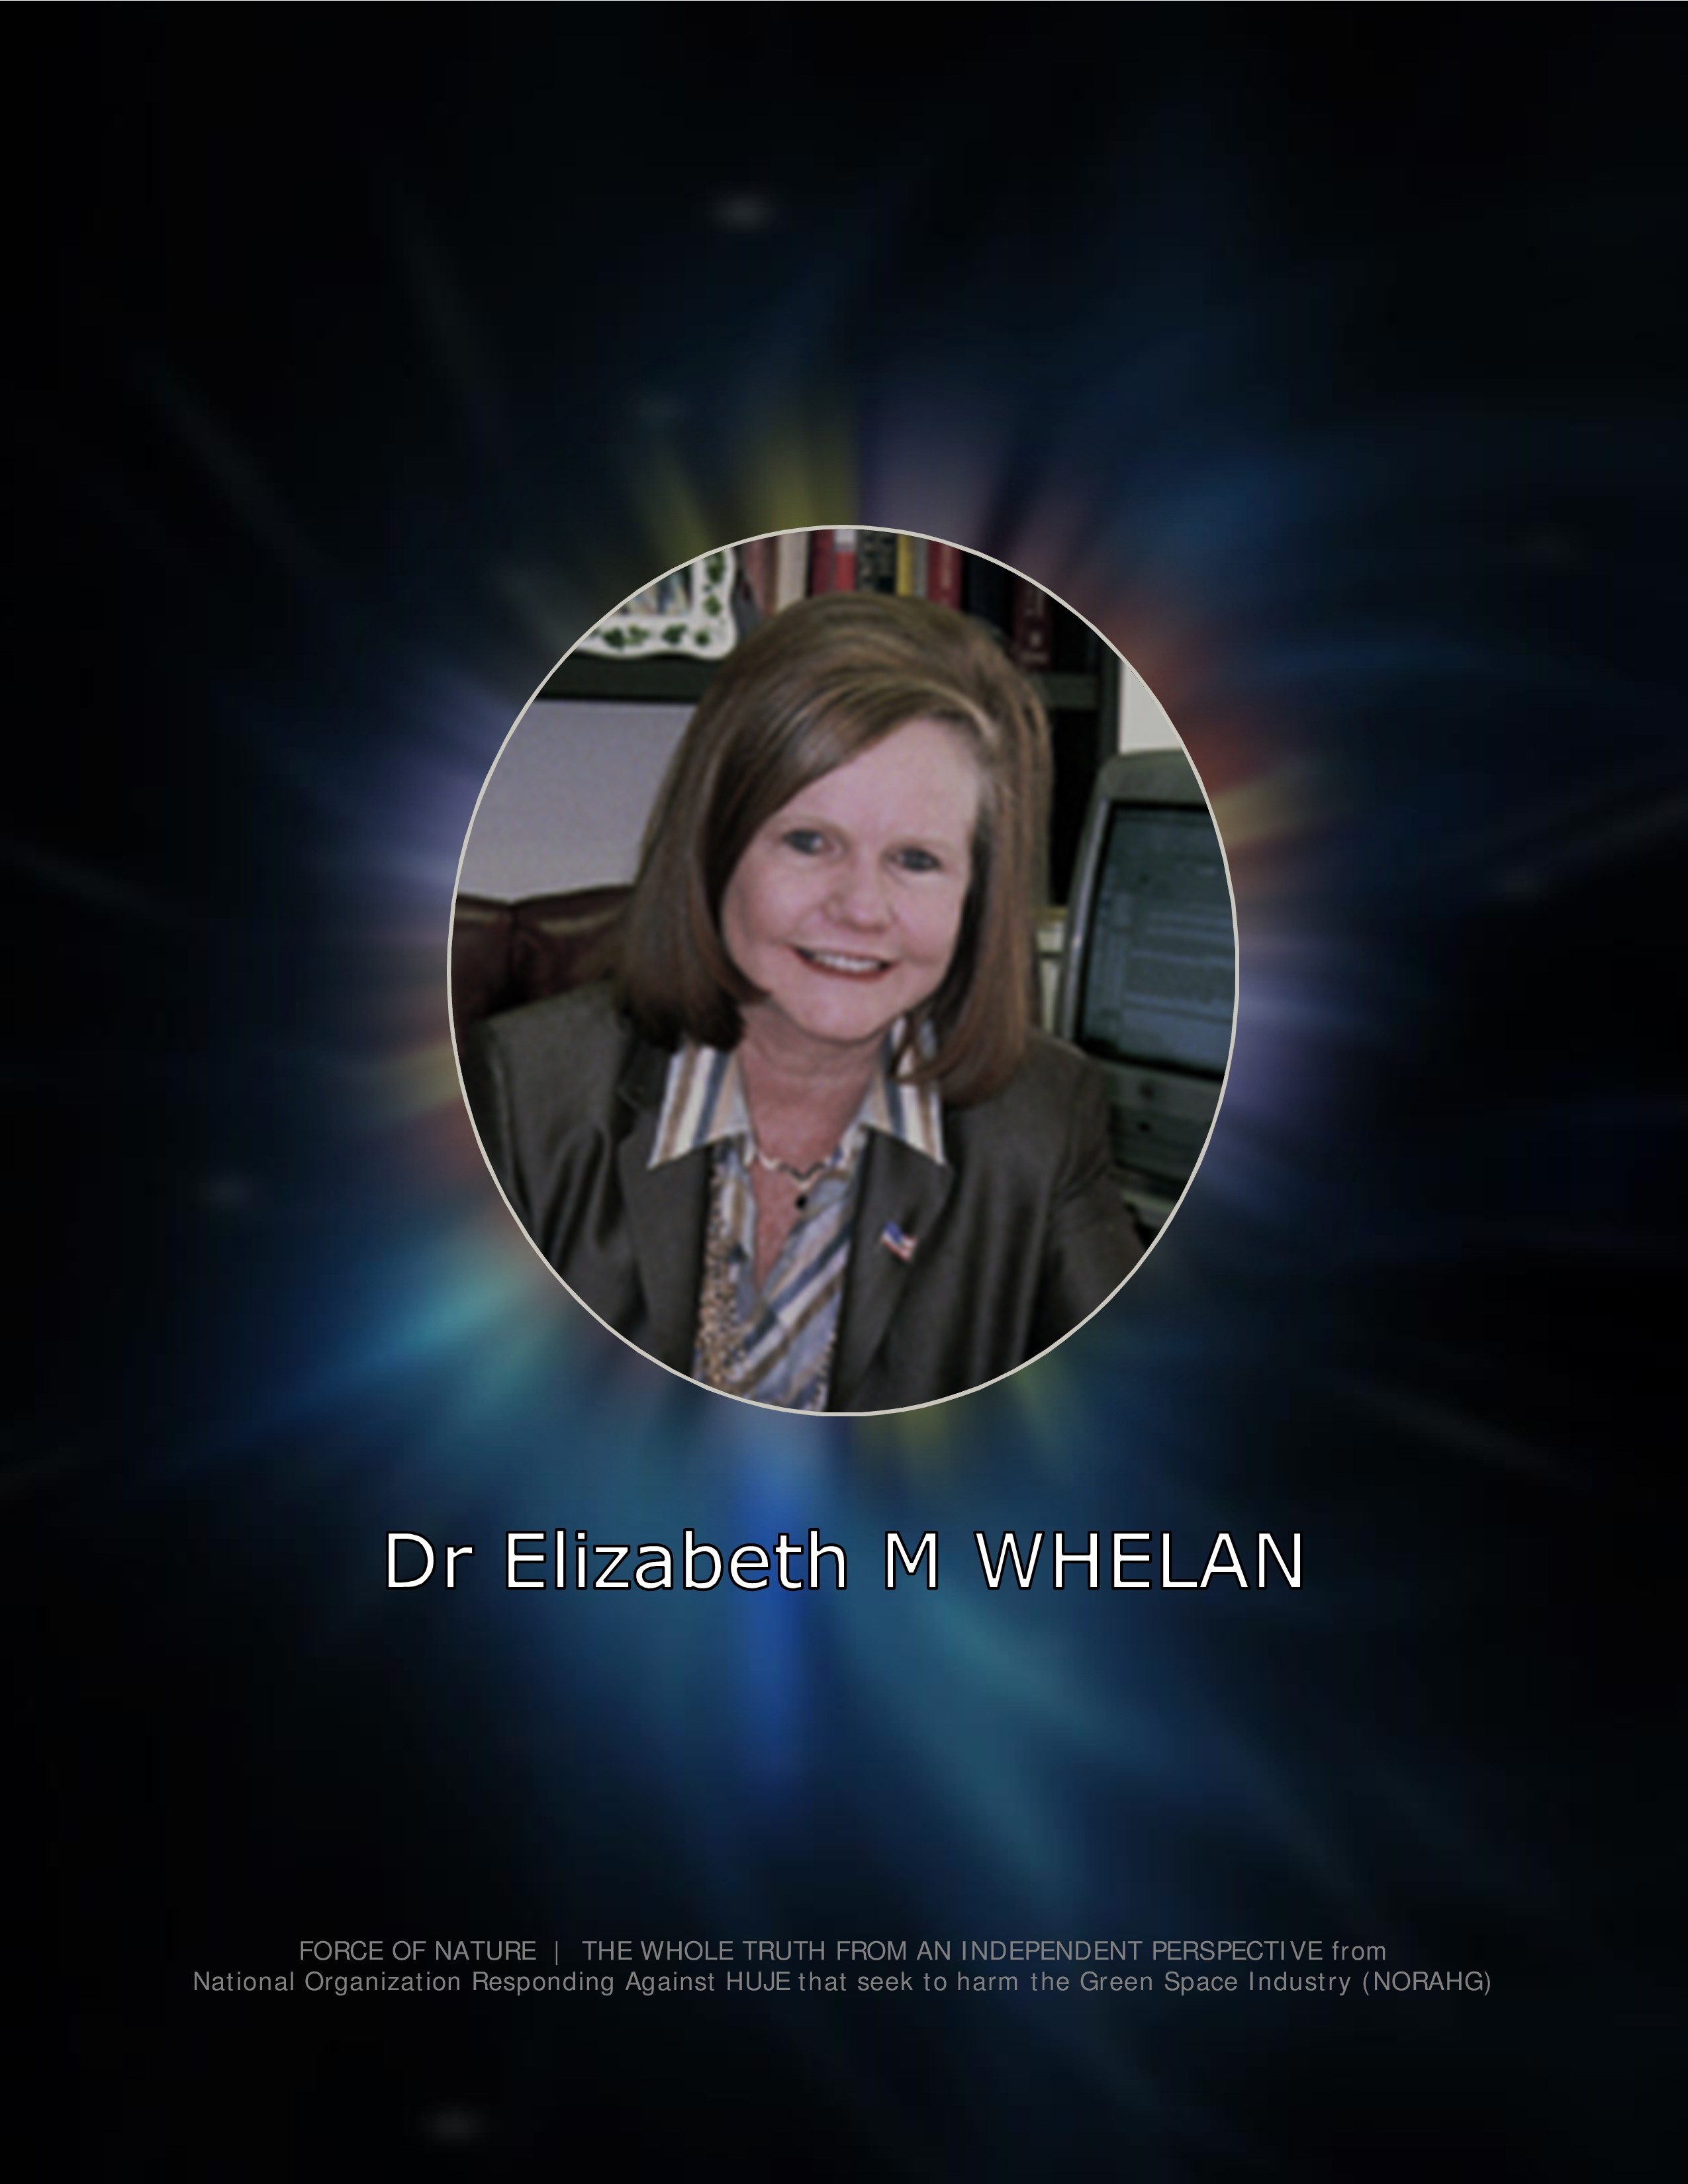 Dr Elizabeth M Whelan -- American Council on Science and Health